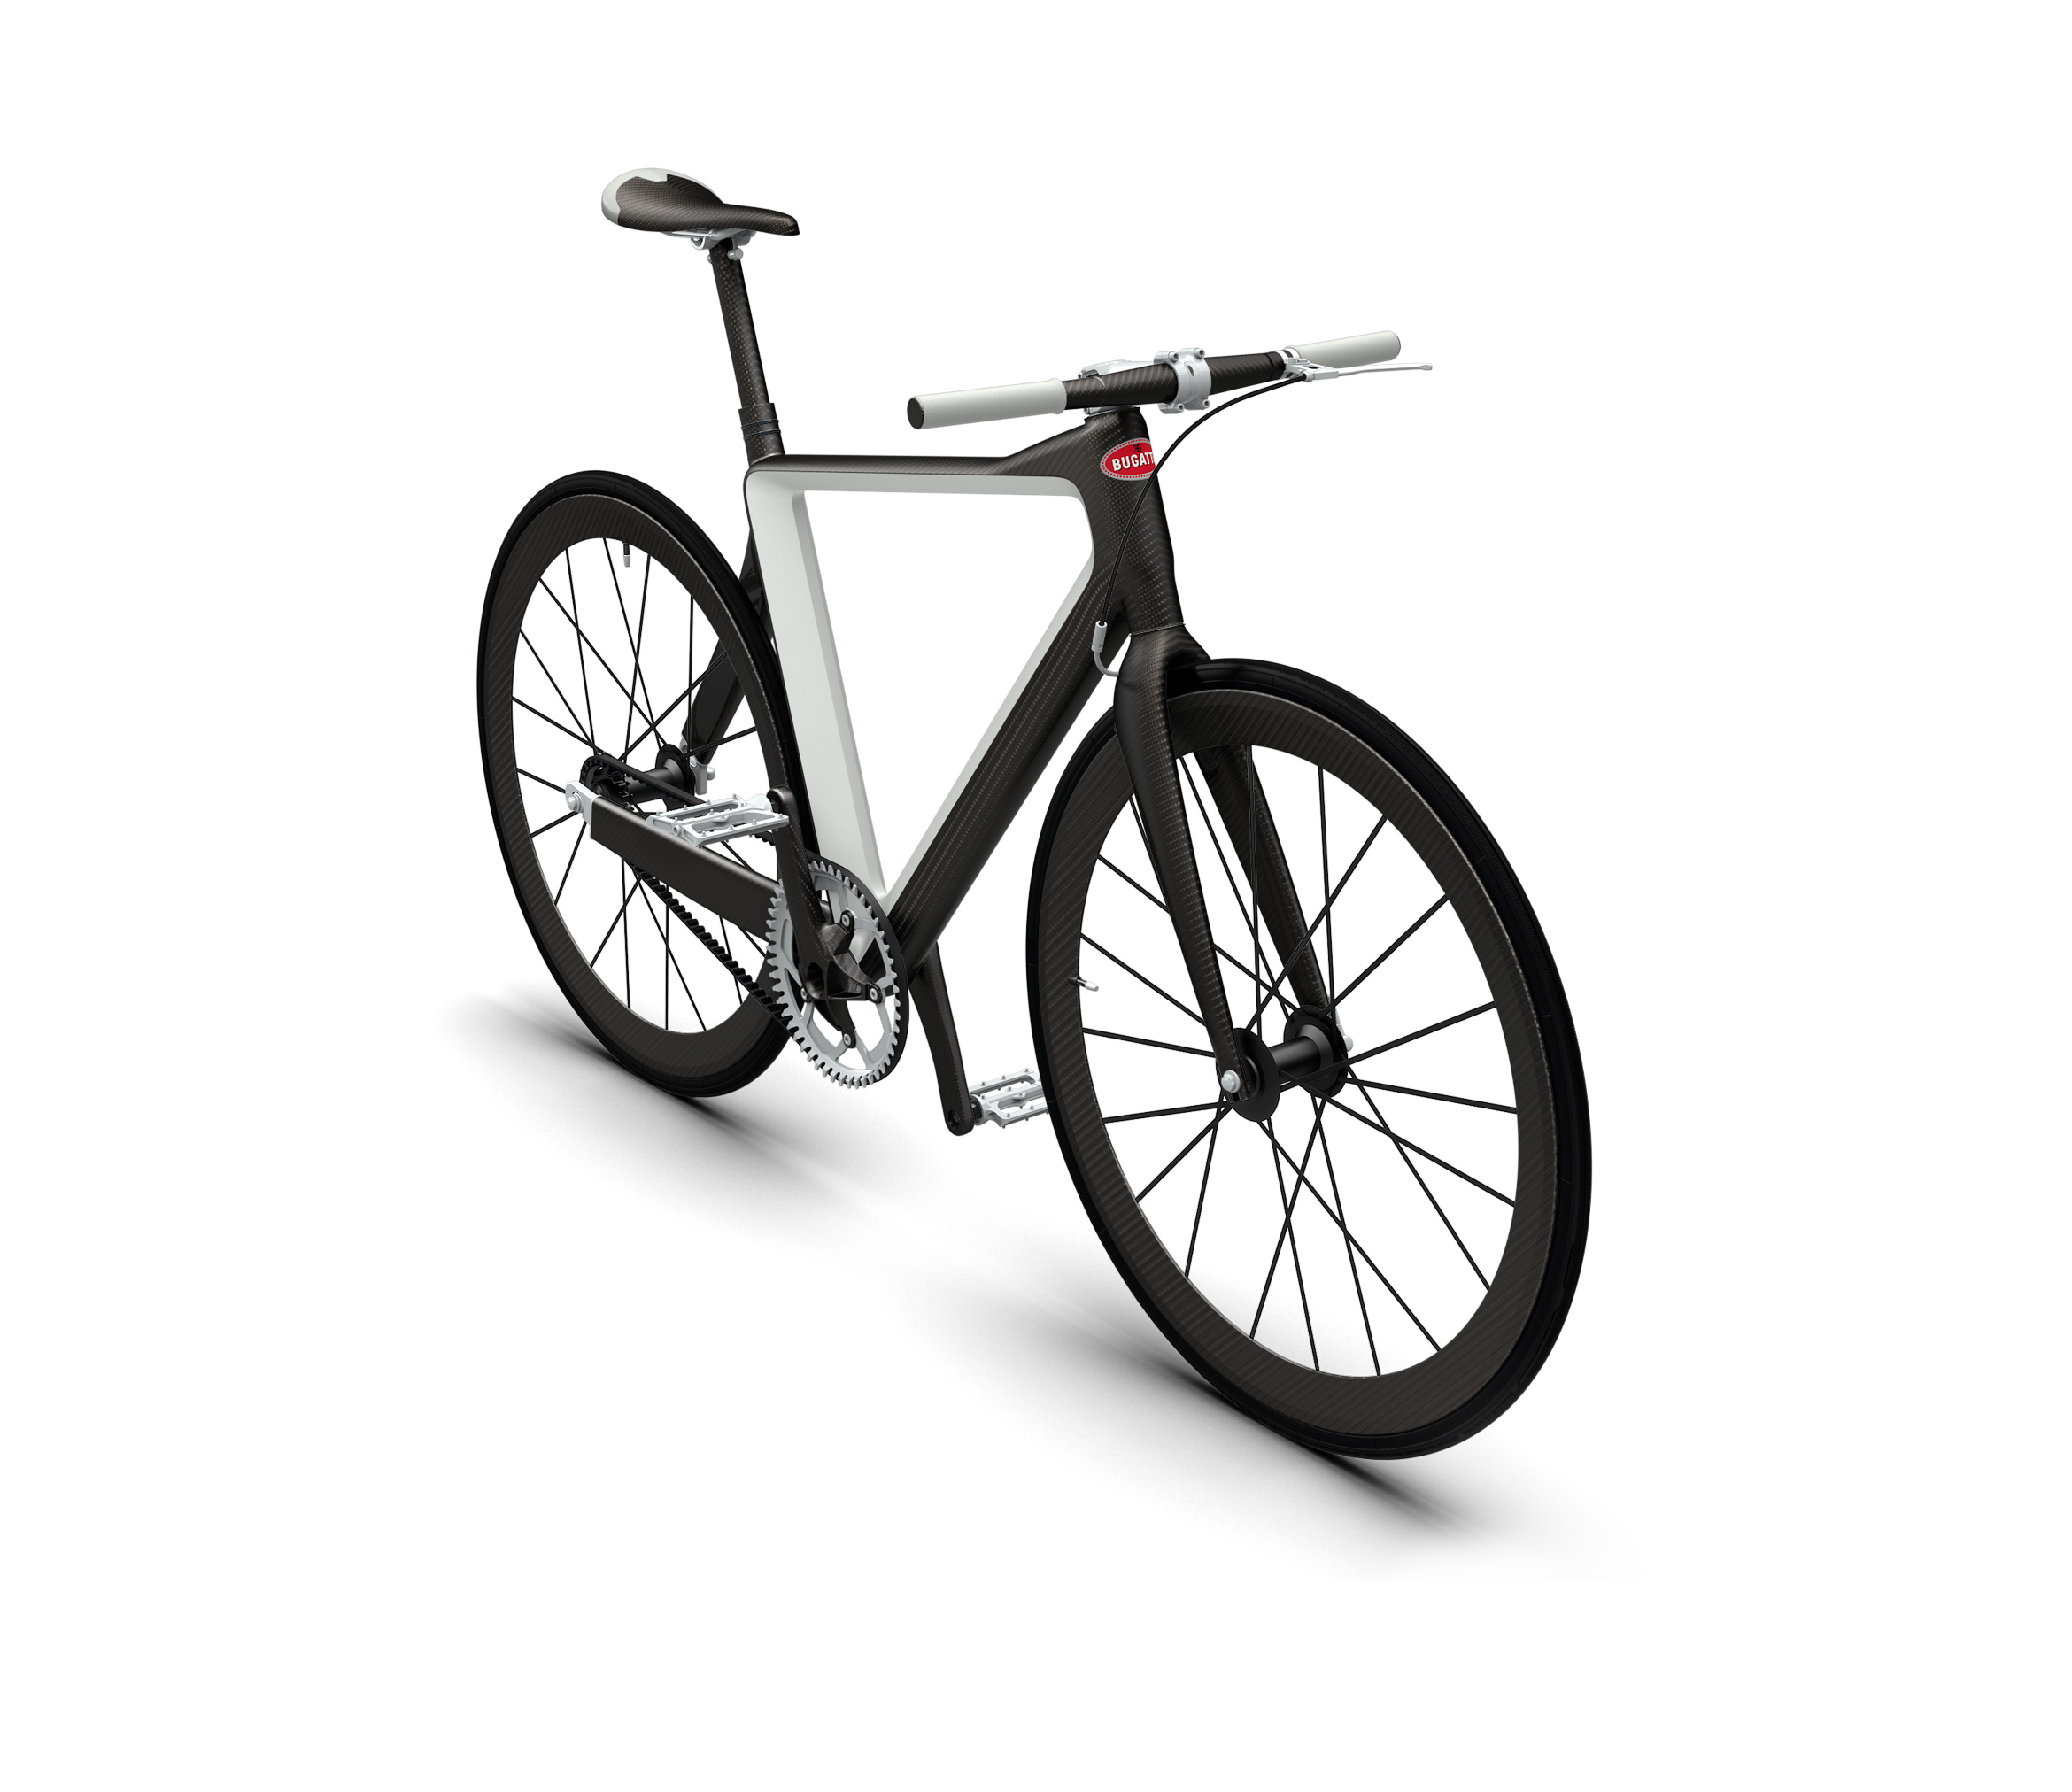 PG Bugatti bicycle (21)